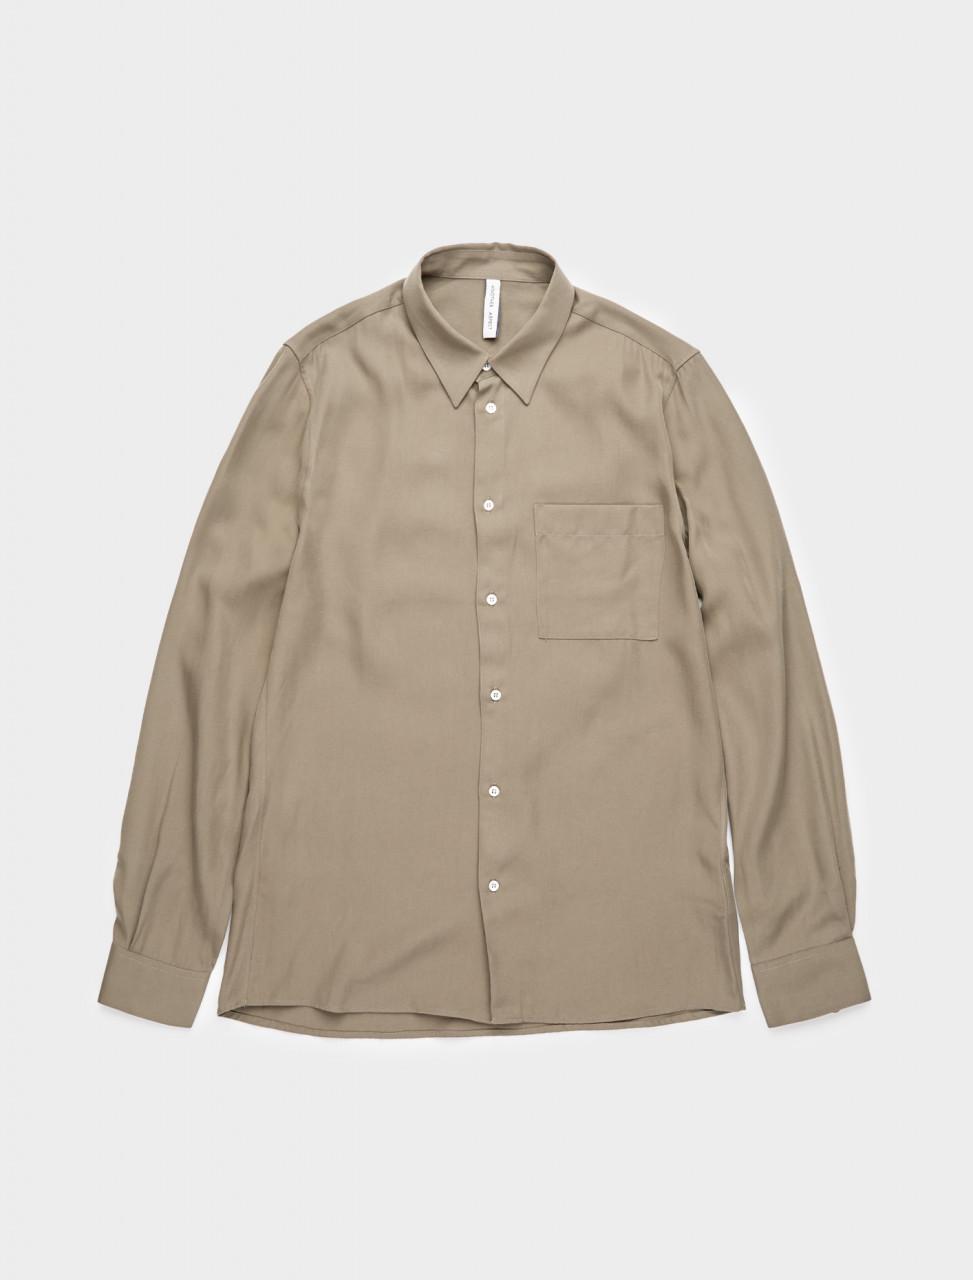 344-123462-007 ANOTHER ASPECT ANOTHER SHIRT 1.0 DRIED HERB